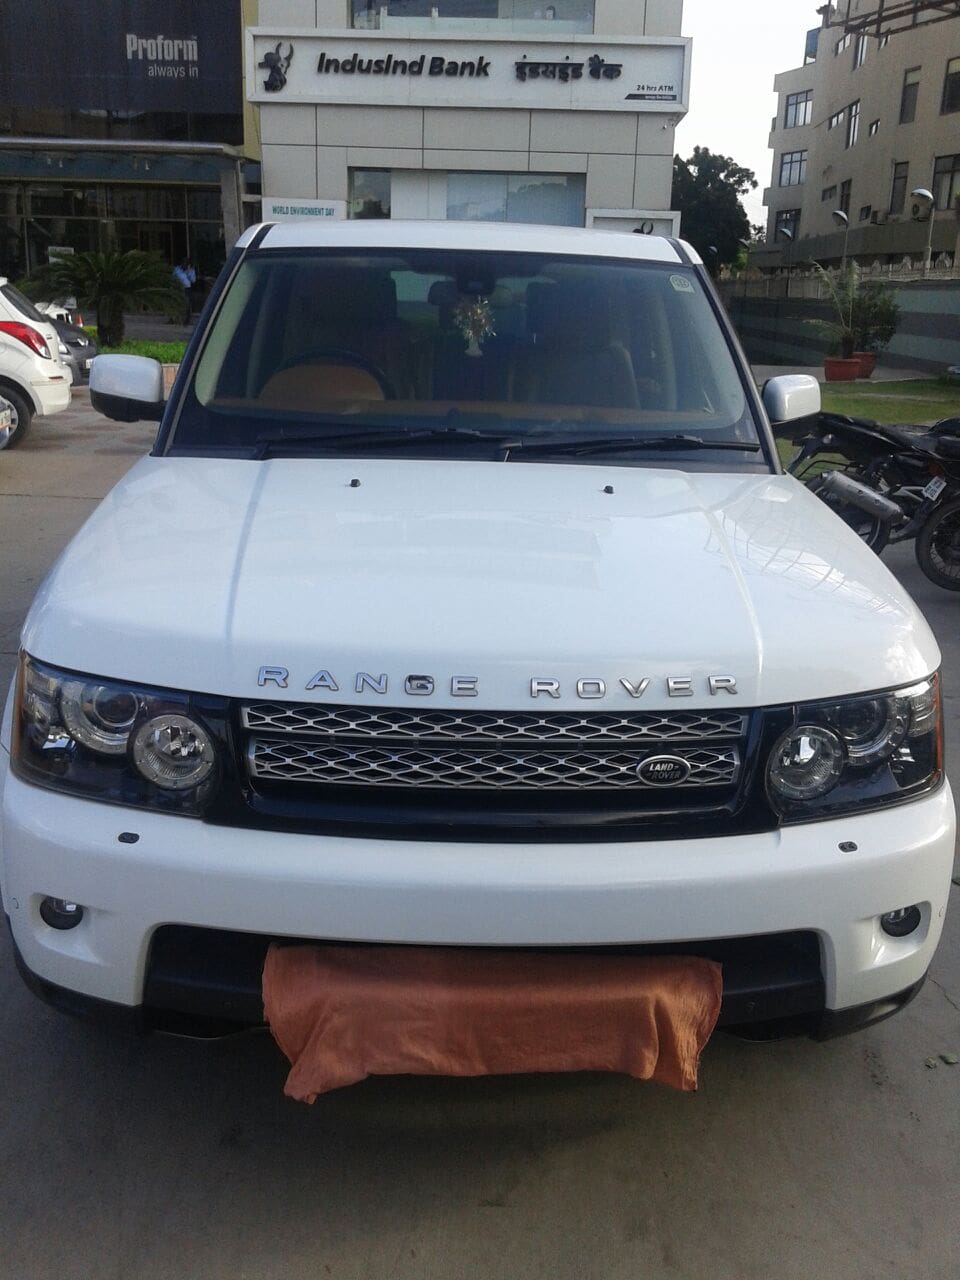 land rover range rover sport diesel hse price specs review pics mileage in india. Black Bedroom Furniture Sets. Home Design Ideas